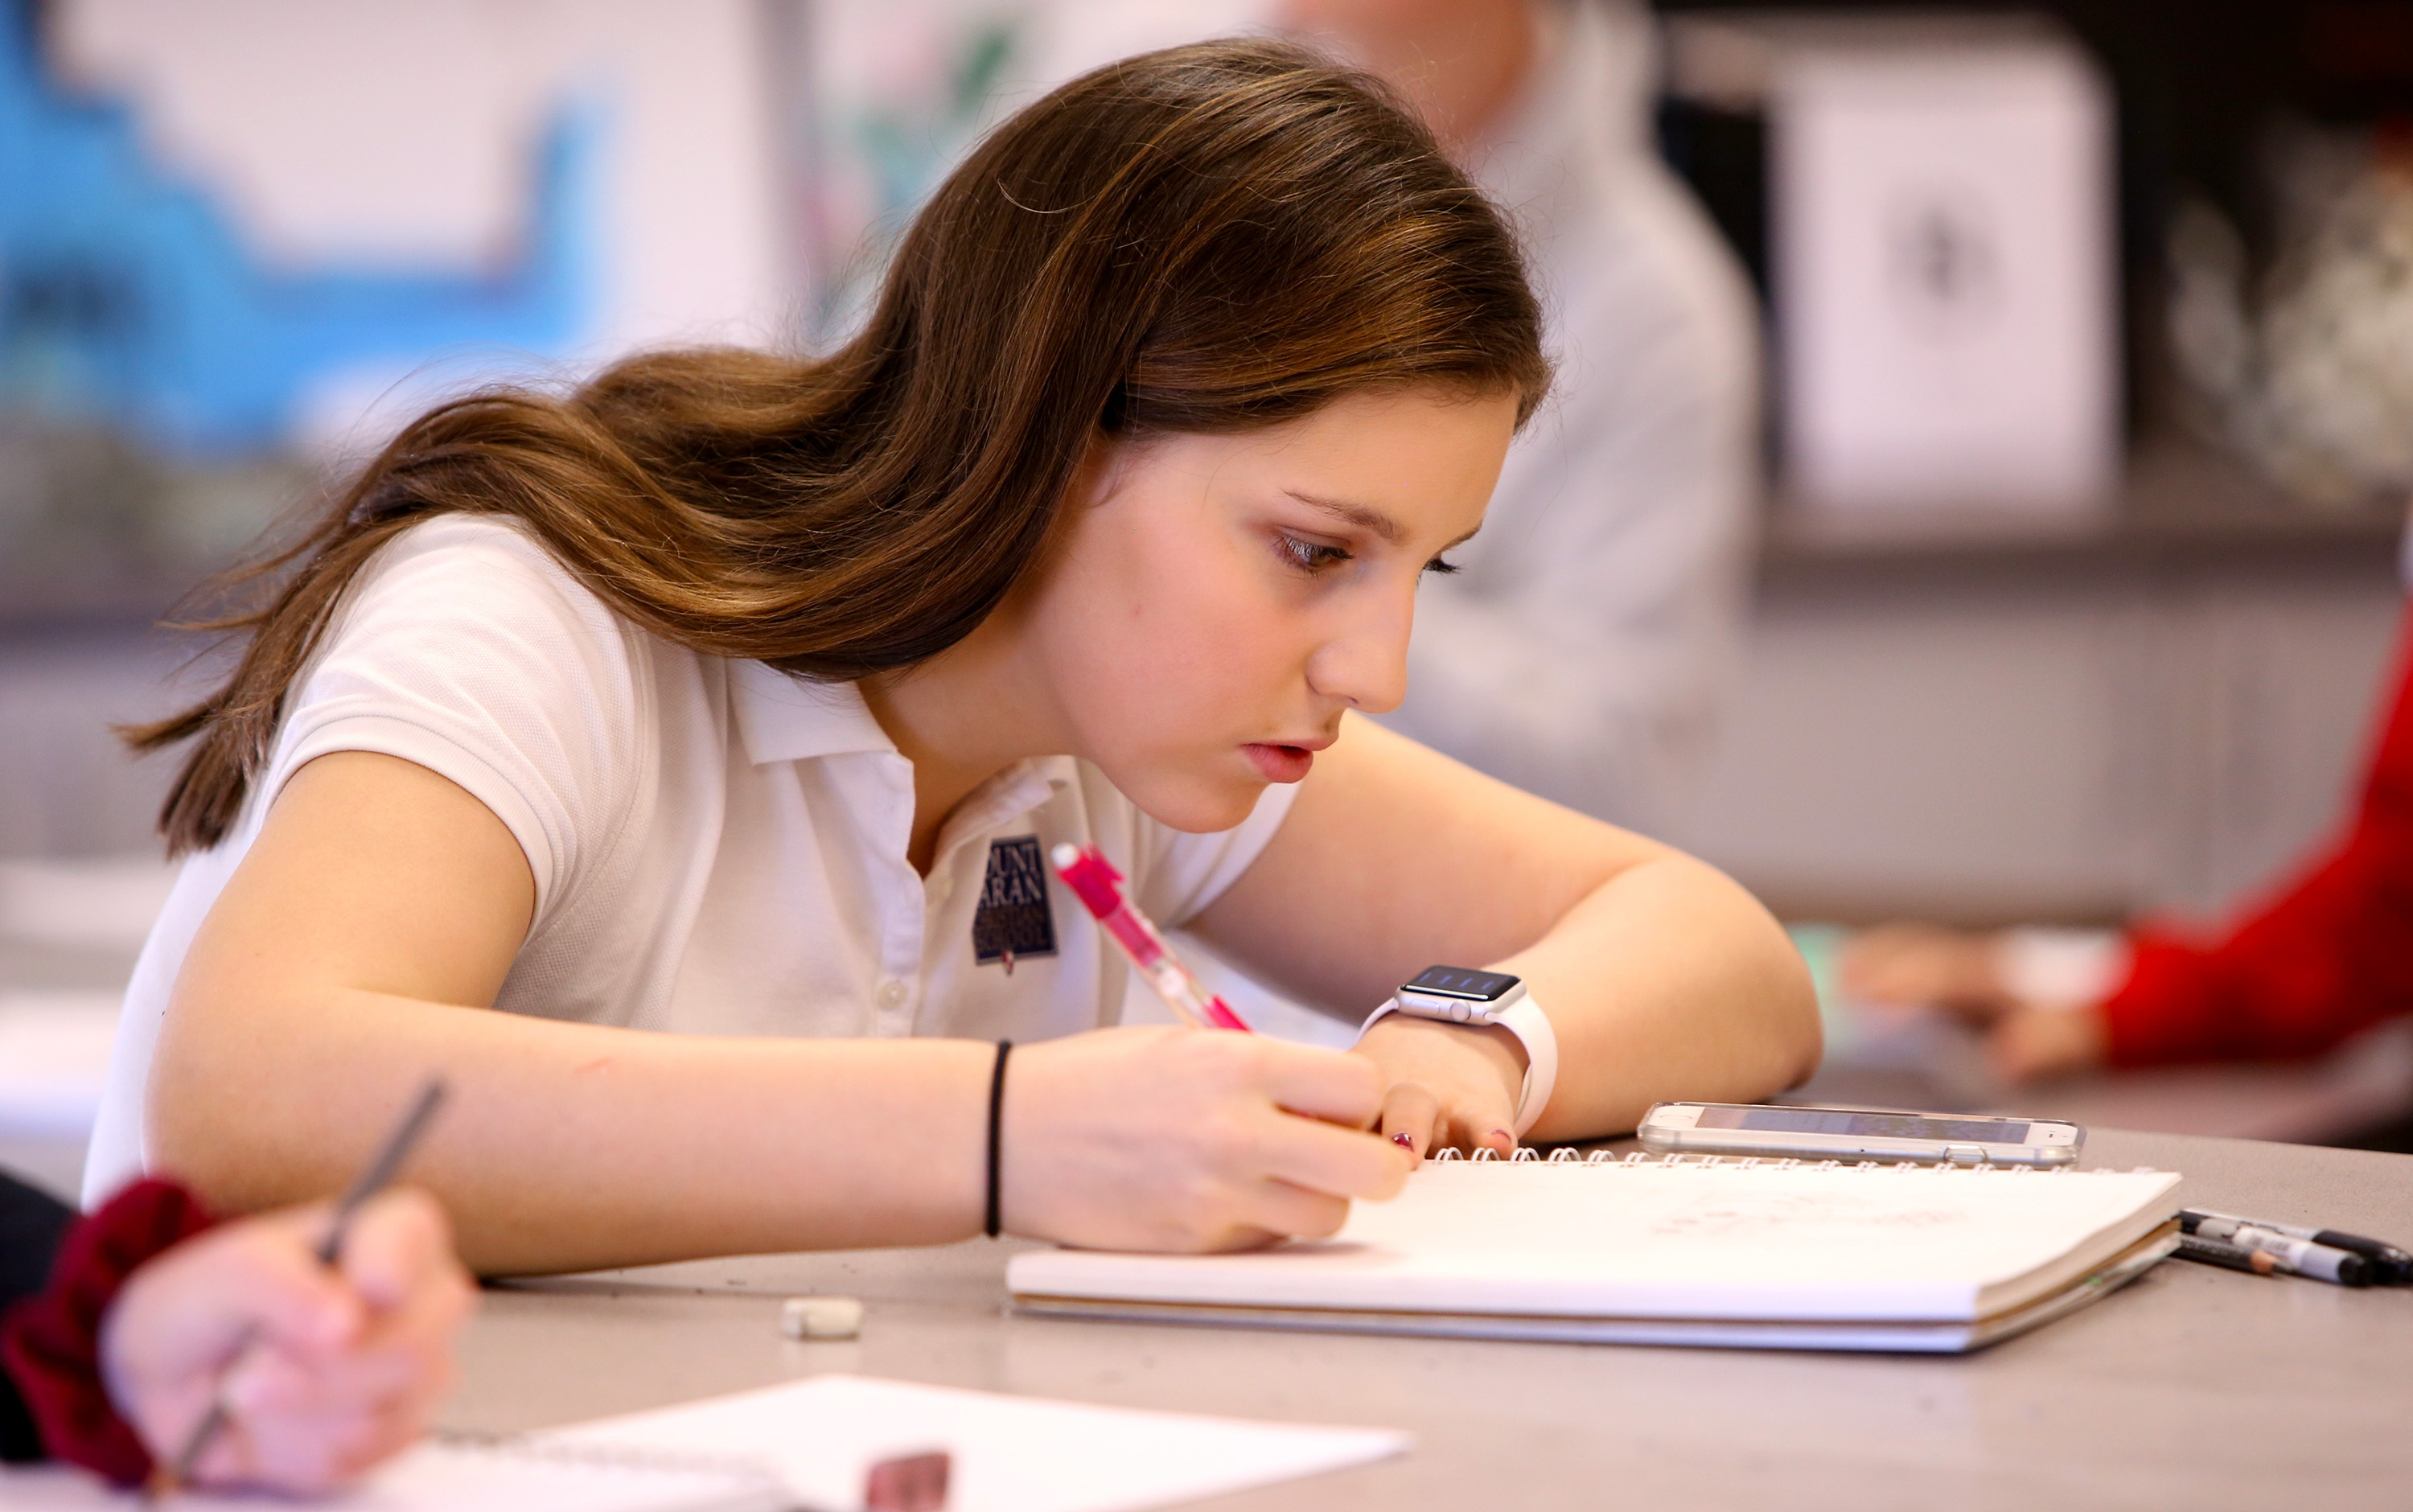 ParentEd. – Five Tips for Studying Smarter, Not Harder